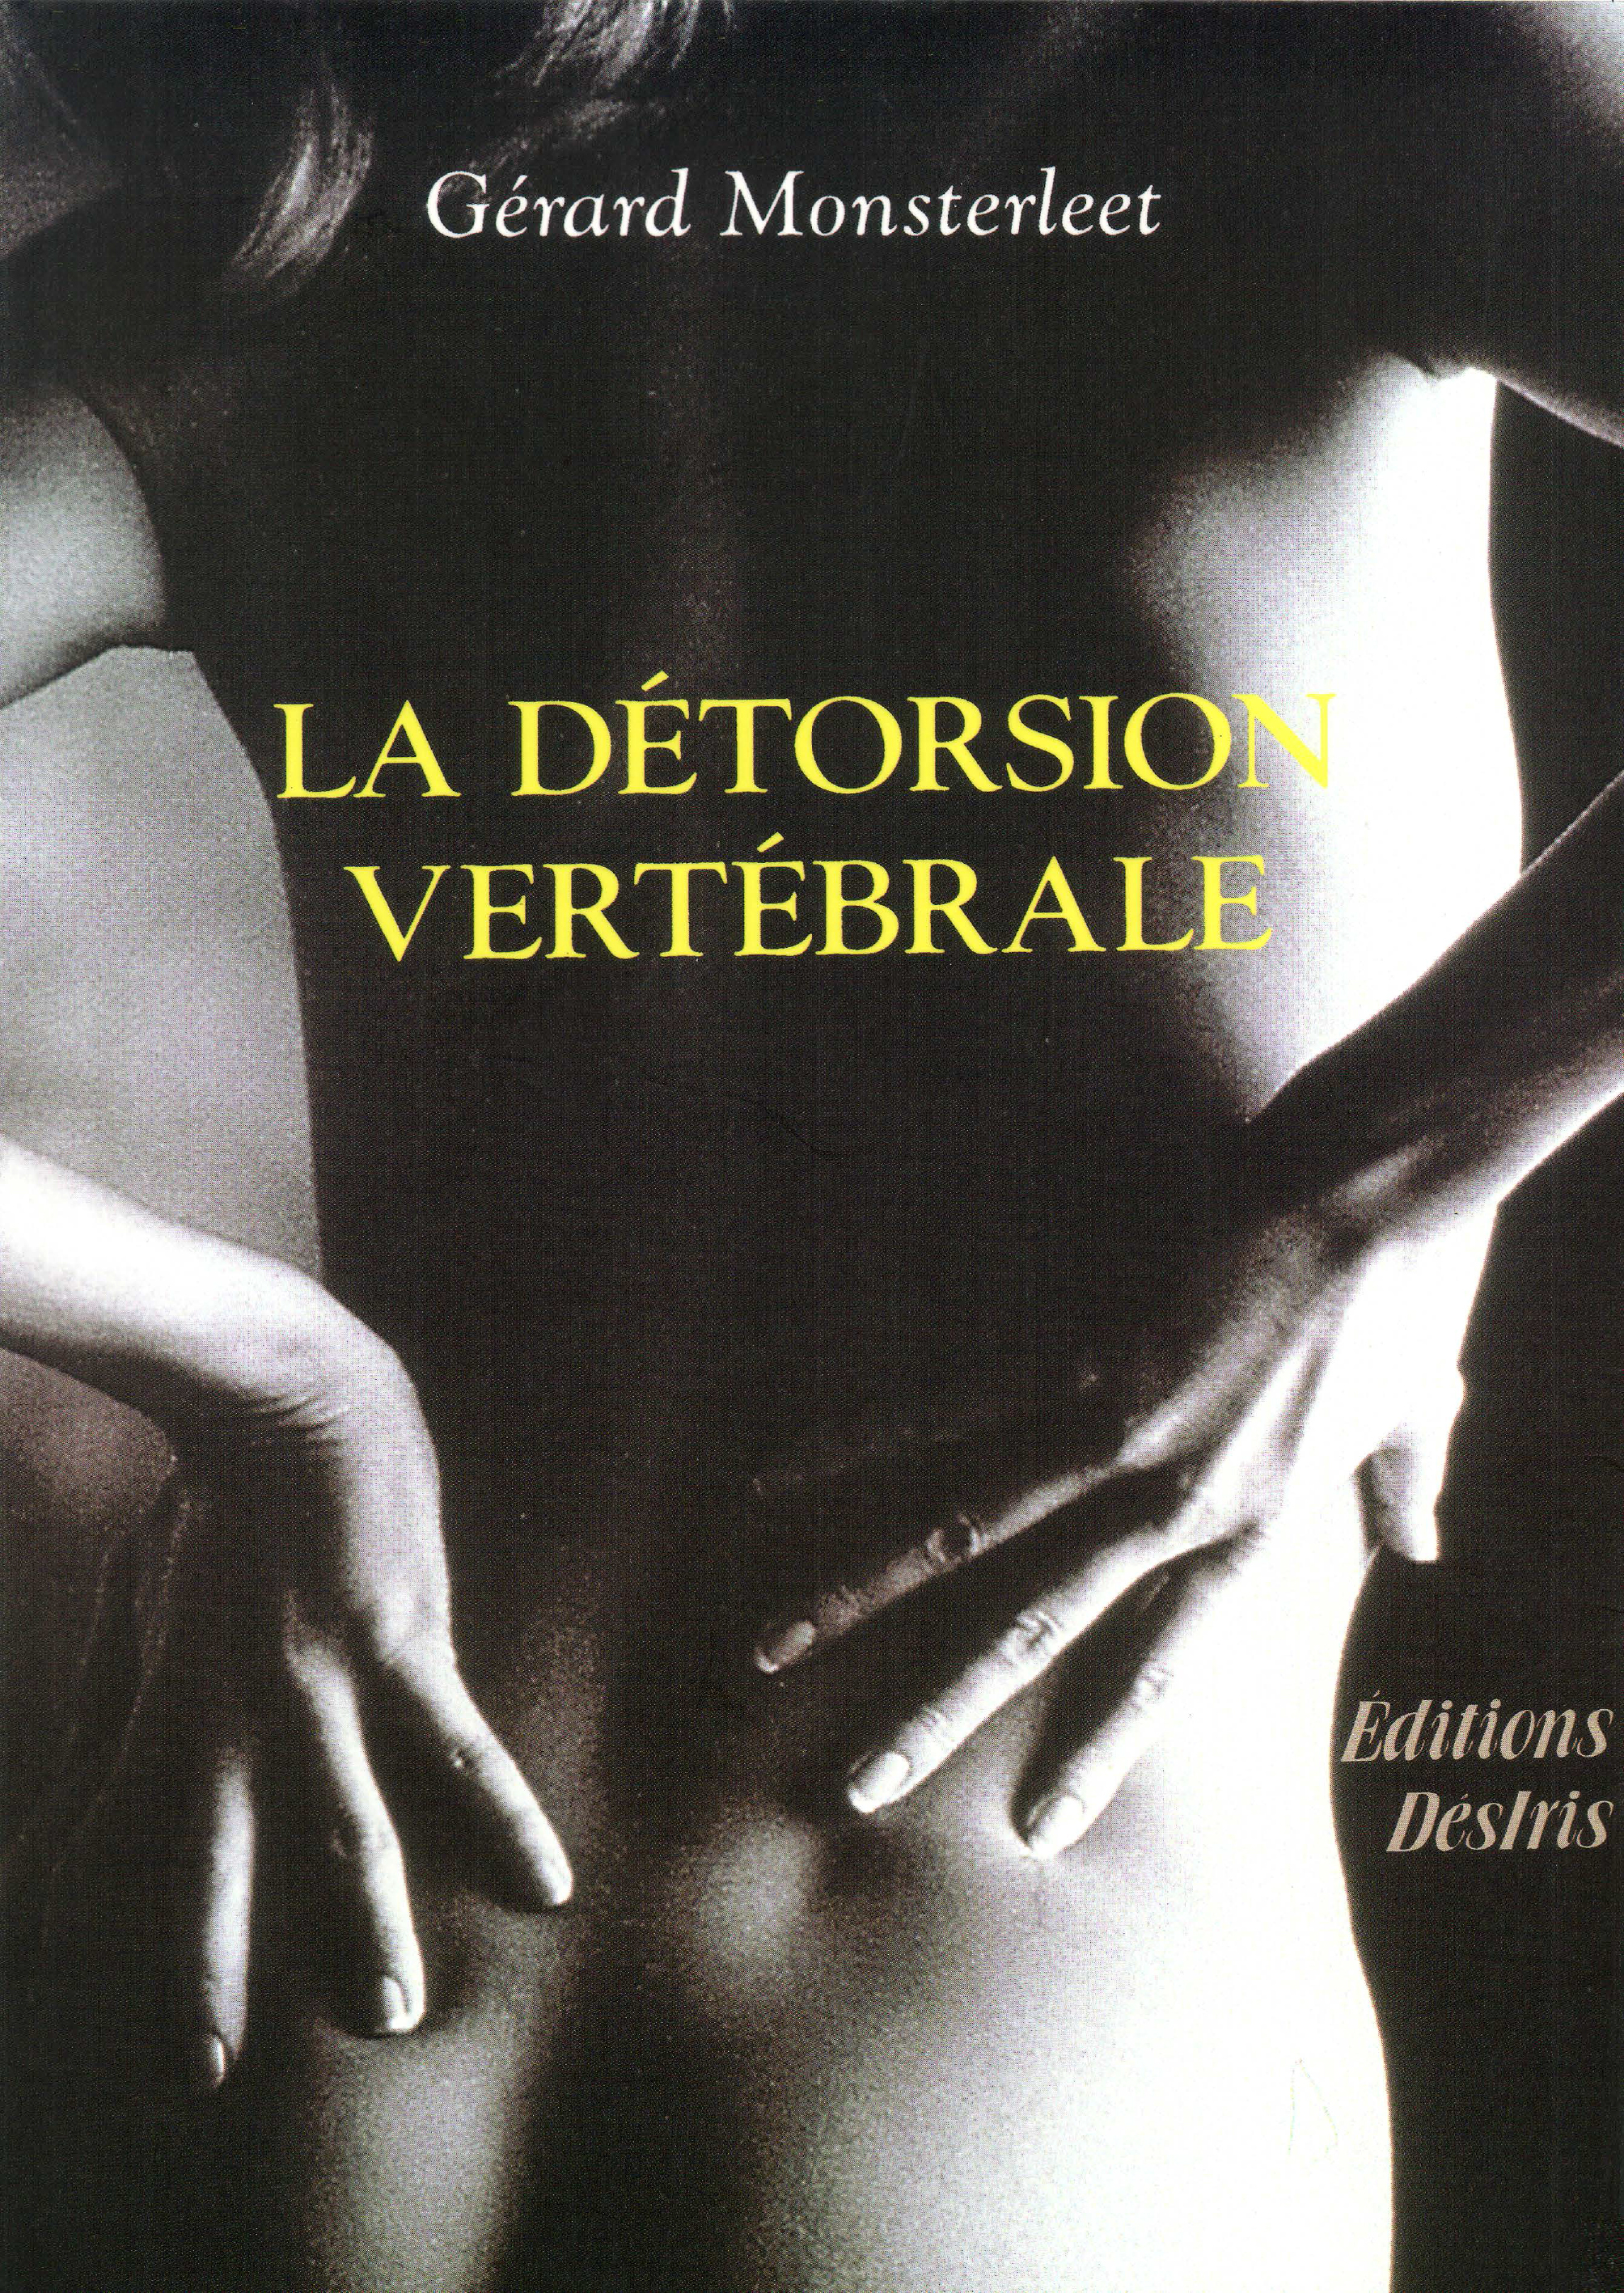 DETORSION VERTEBRALE